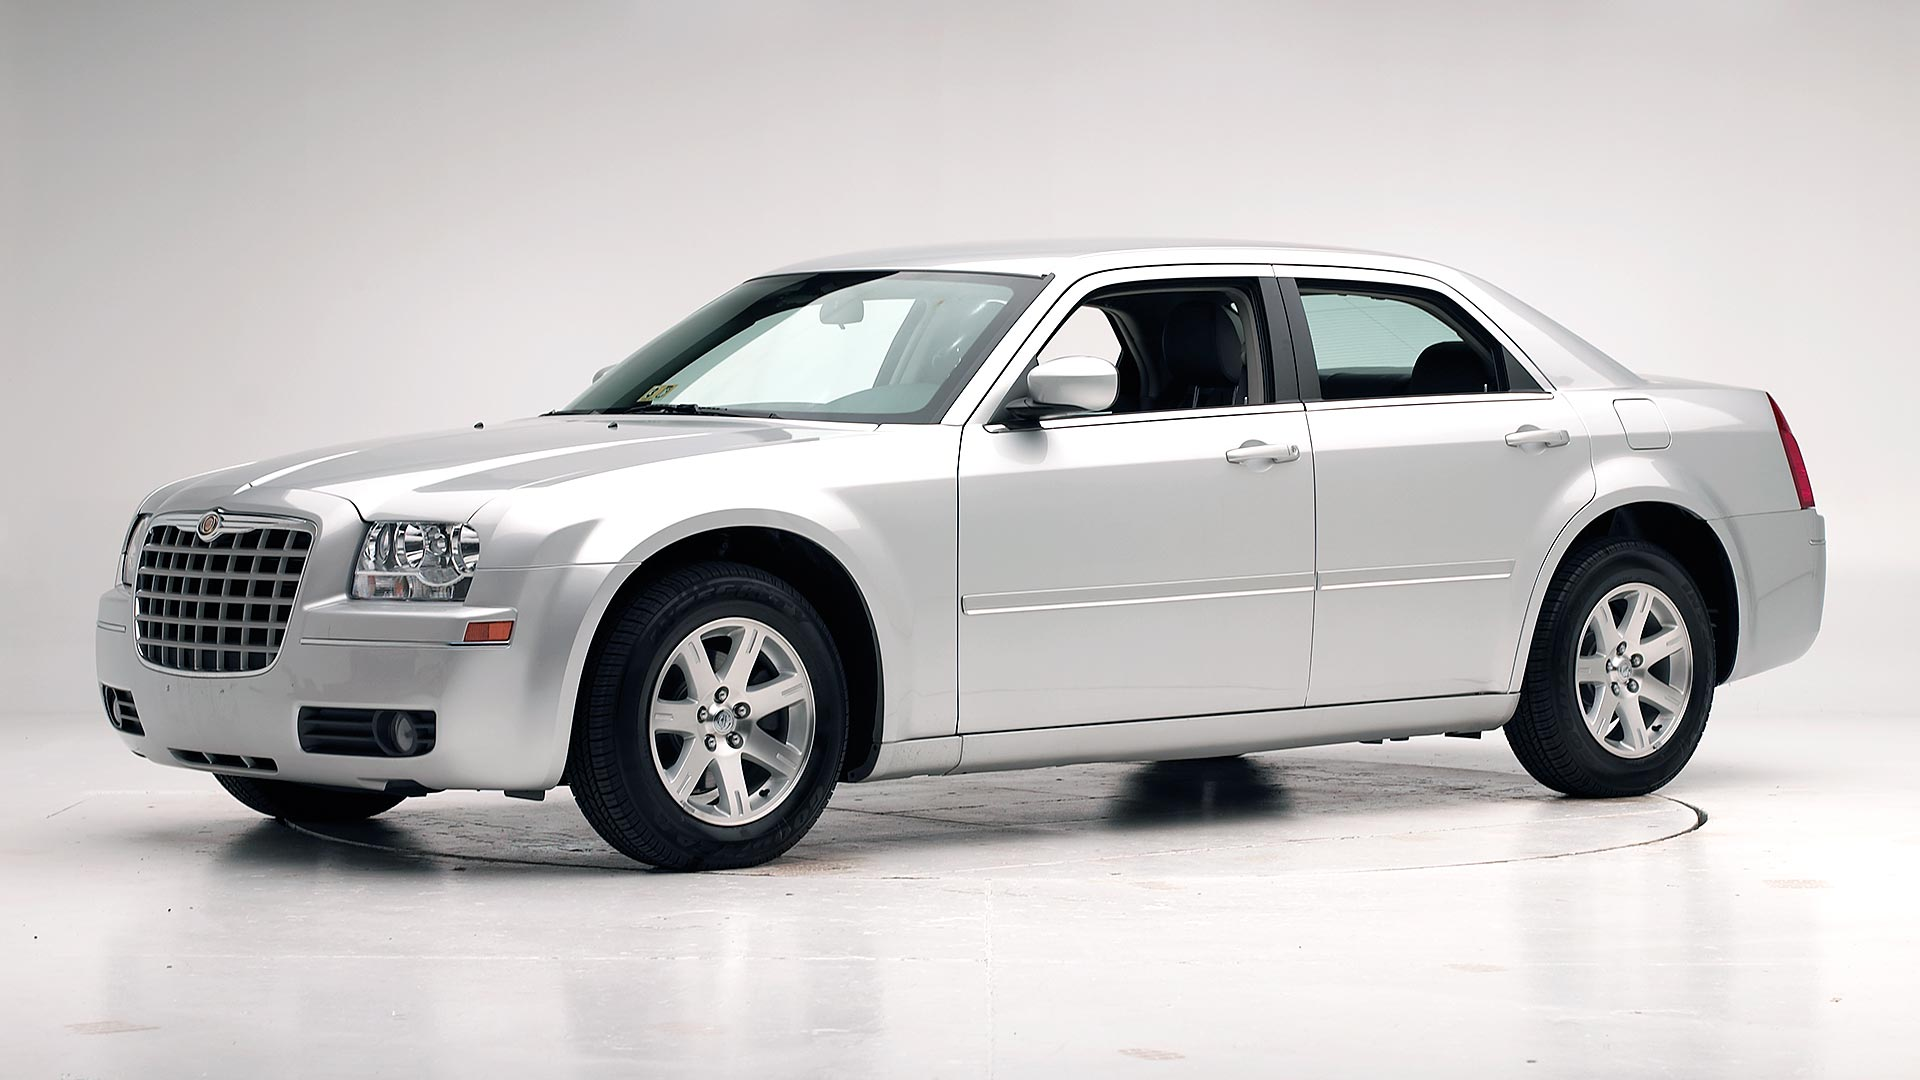 2005 Chrysler 300 4-door sedan